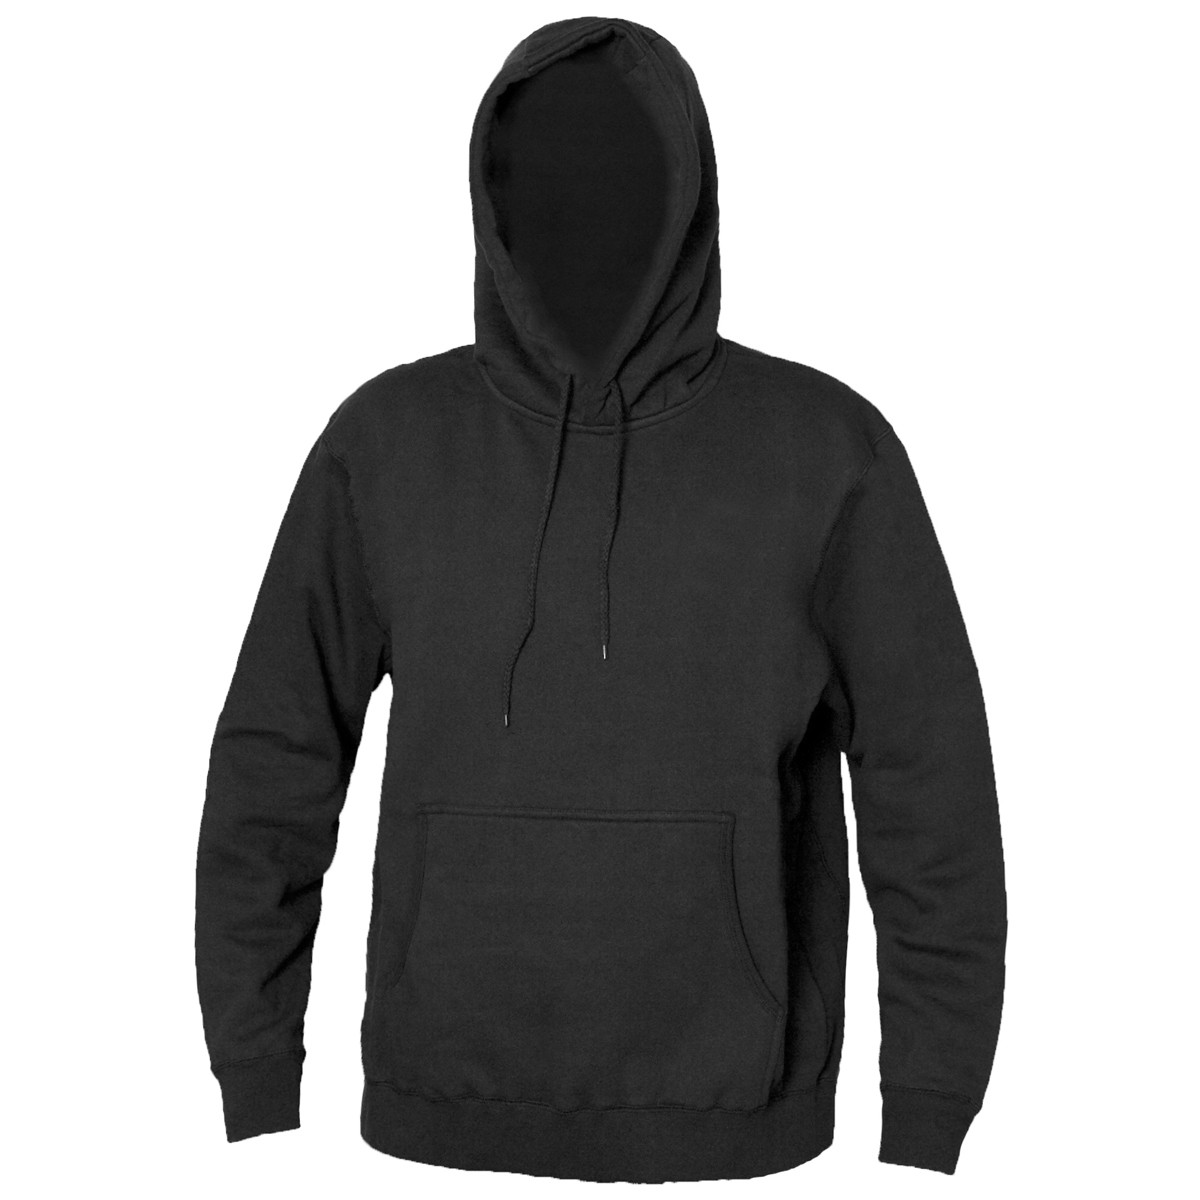 Grundens Hs11 Blank Heavy Duty Hooded Sweatshirt